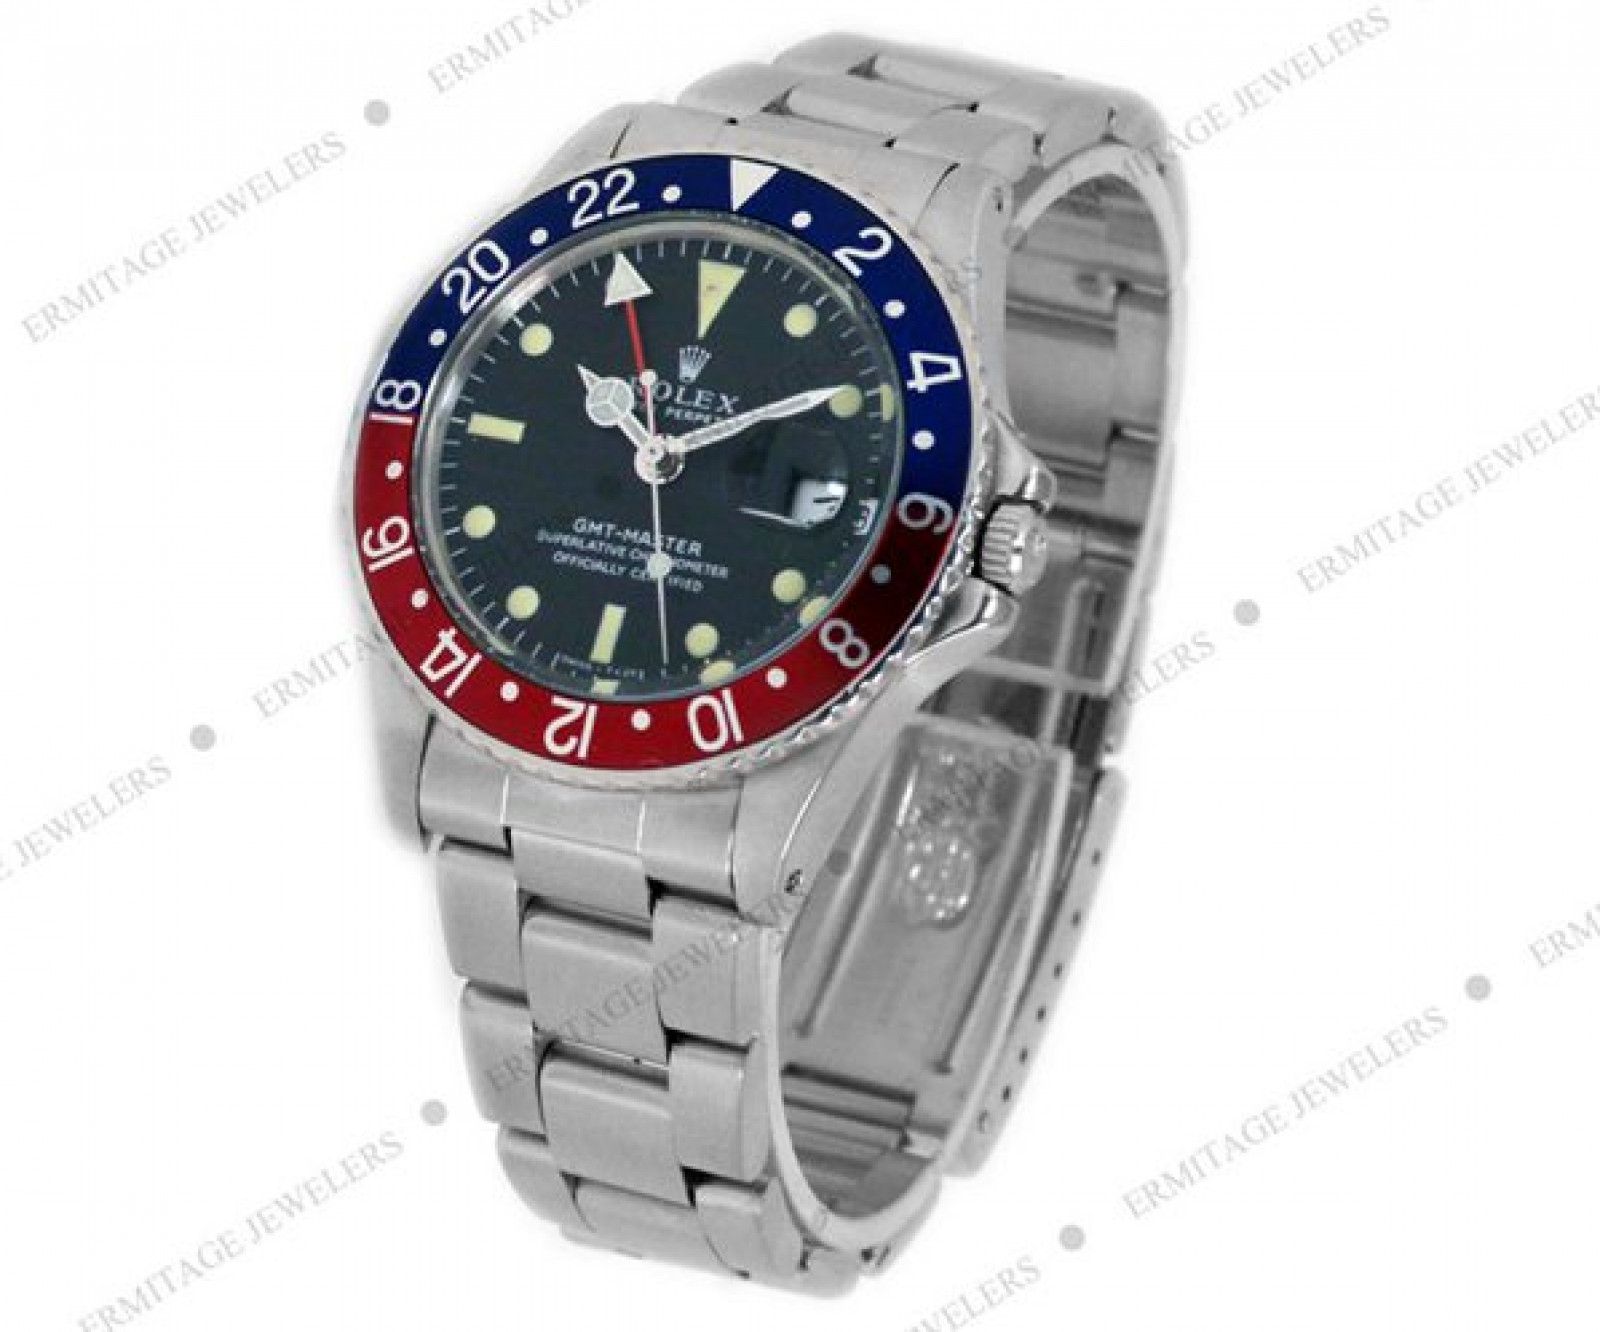 Vintage Rolex GMT-Master 1675 Pepsi Style Bezel with Black Dial 1970